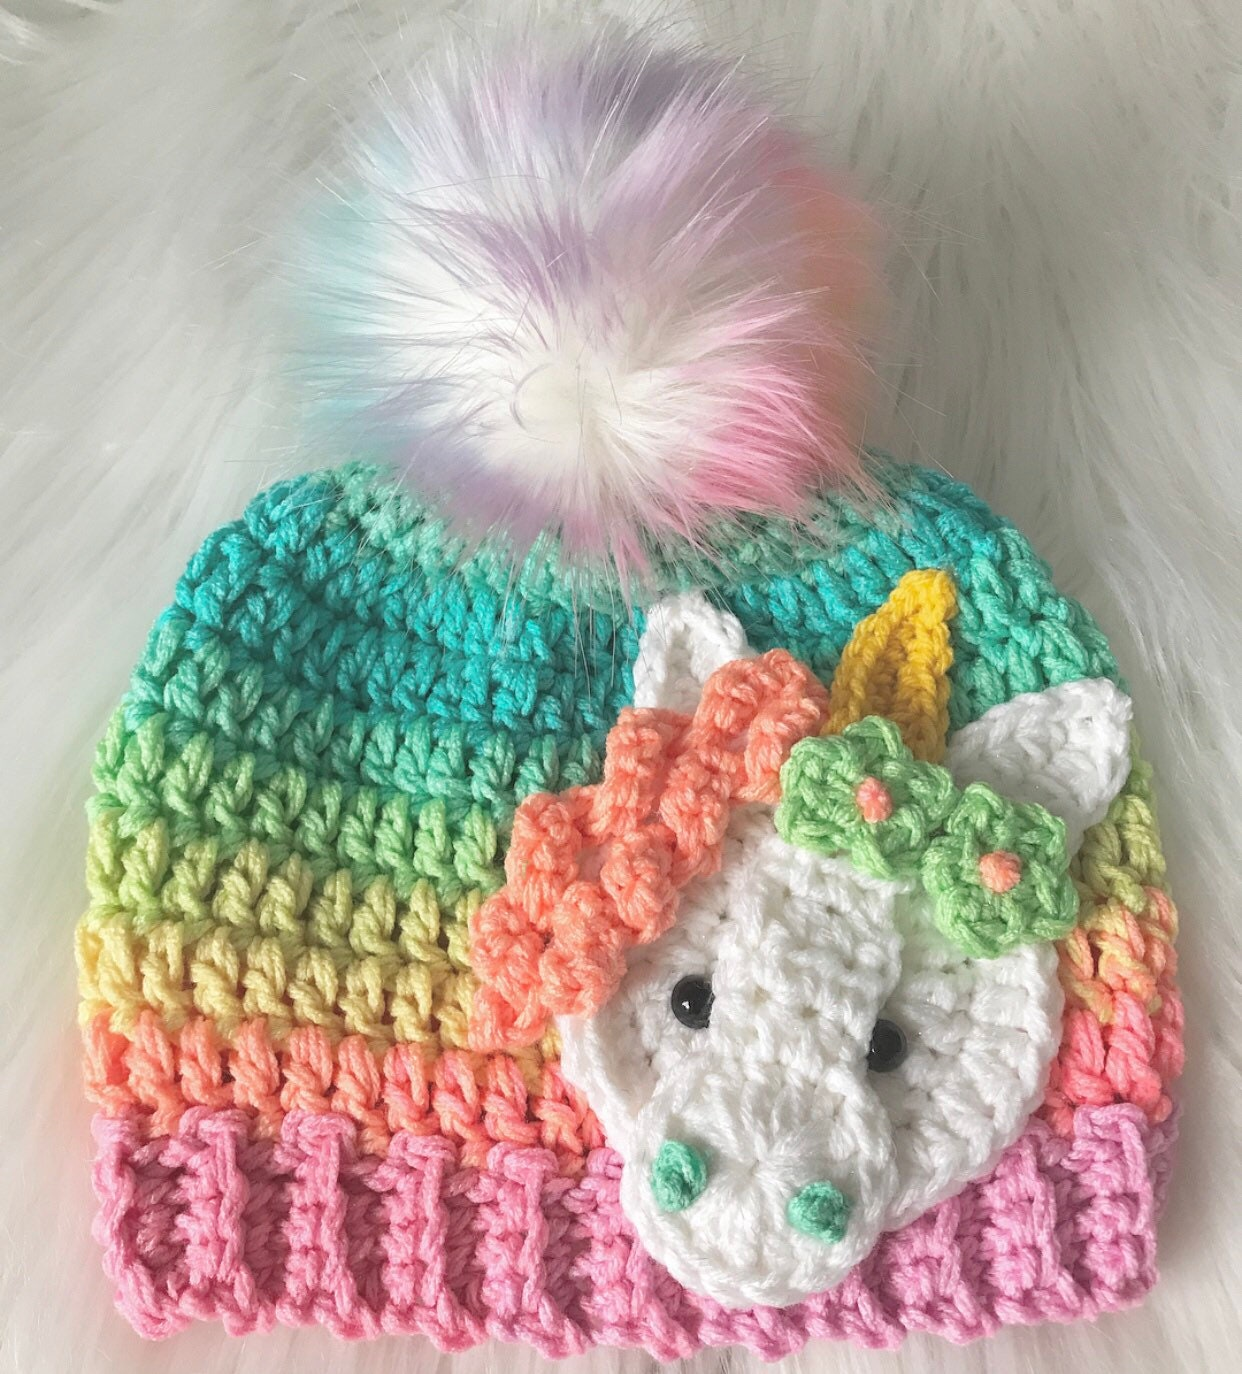 c4970c9d3c8d0 ... Beanie - Hat - Ombre - Gifts for Her - Unicorn Hat - Unicorn Hats -  Crochet. gallery photo gallery photo ...